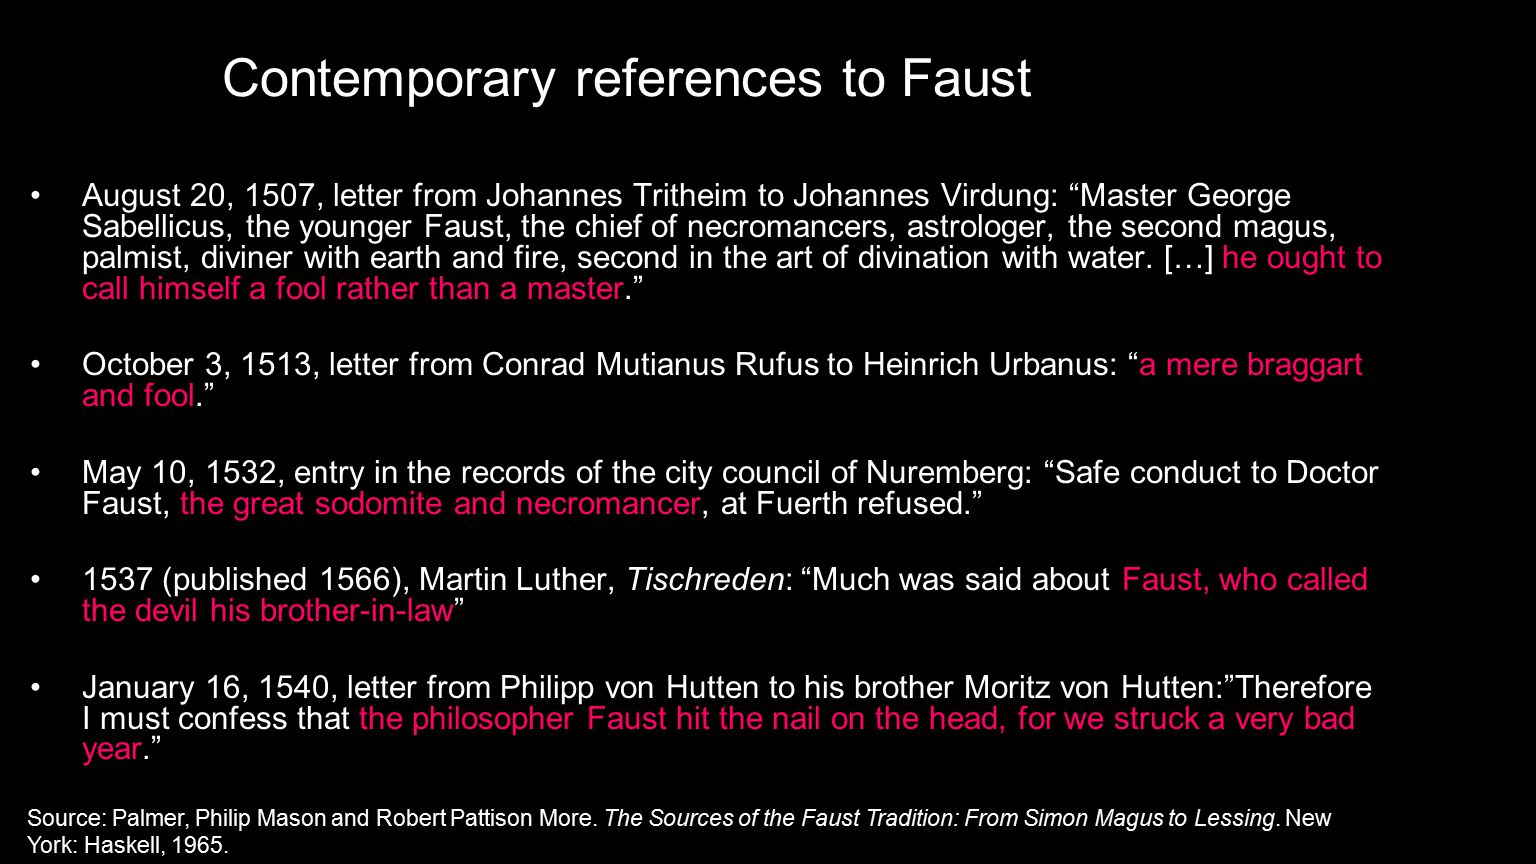 Contemporary references to Faust August 20, 1507, letter from Johannes Tritheim to Johannes Virdung: Master George Sabellicus, the younger Faust, the chief of necromancers, astrologer, the second magus, palmist, diviner with earth and fire, second in the art of divination with water.